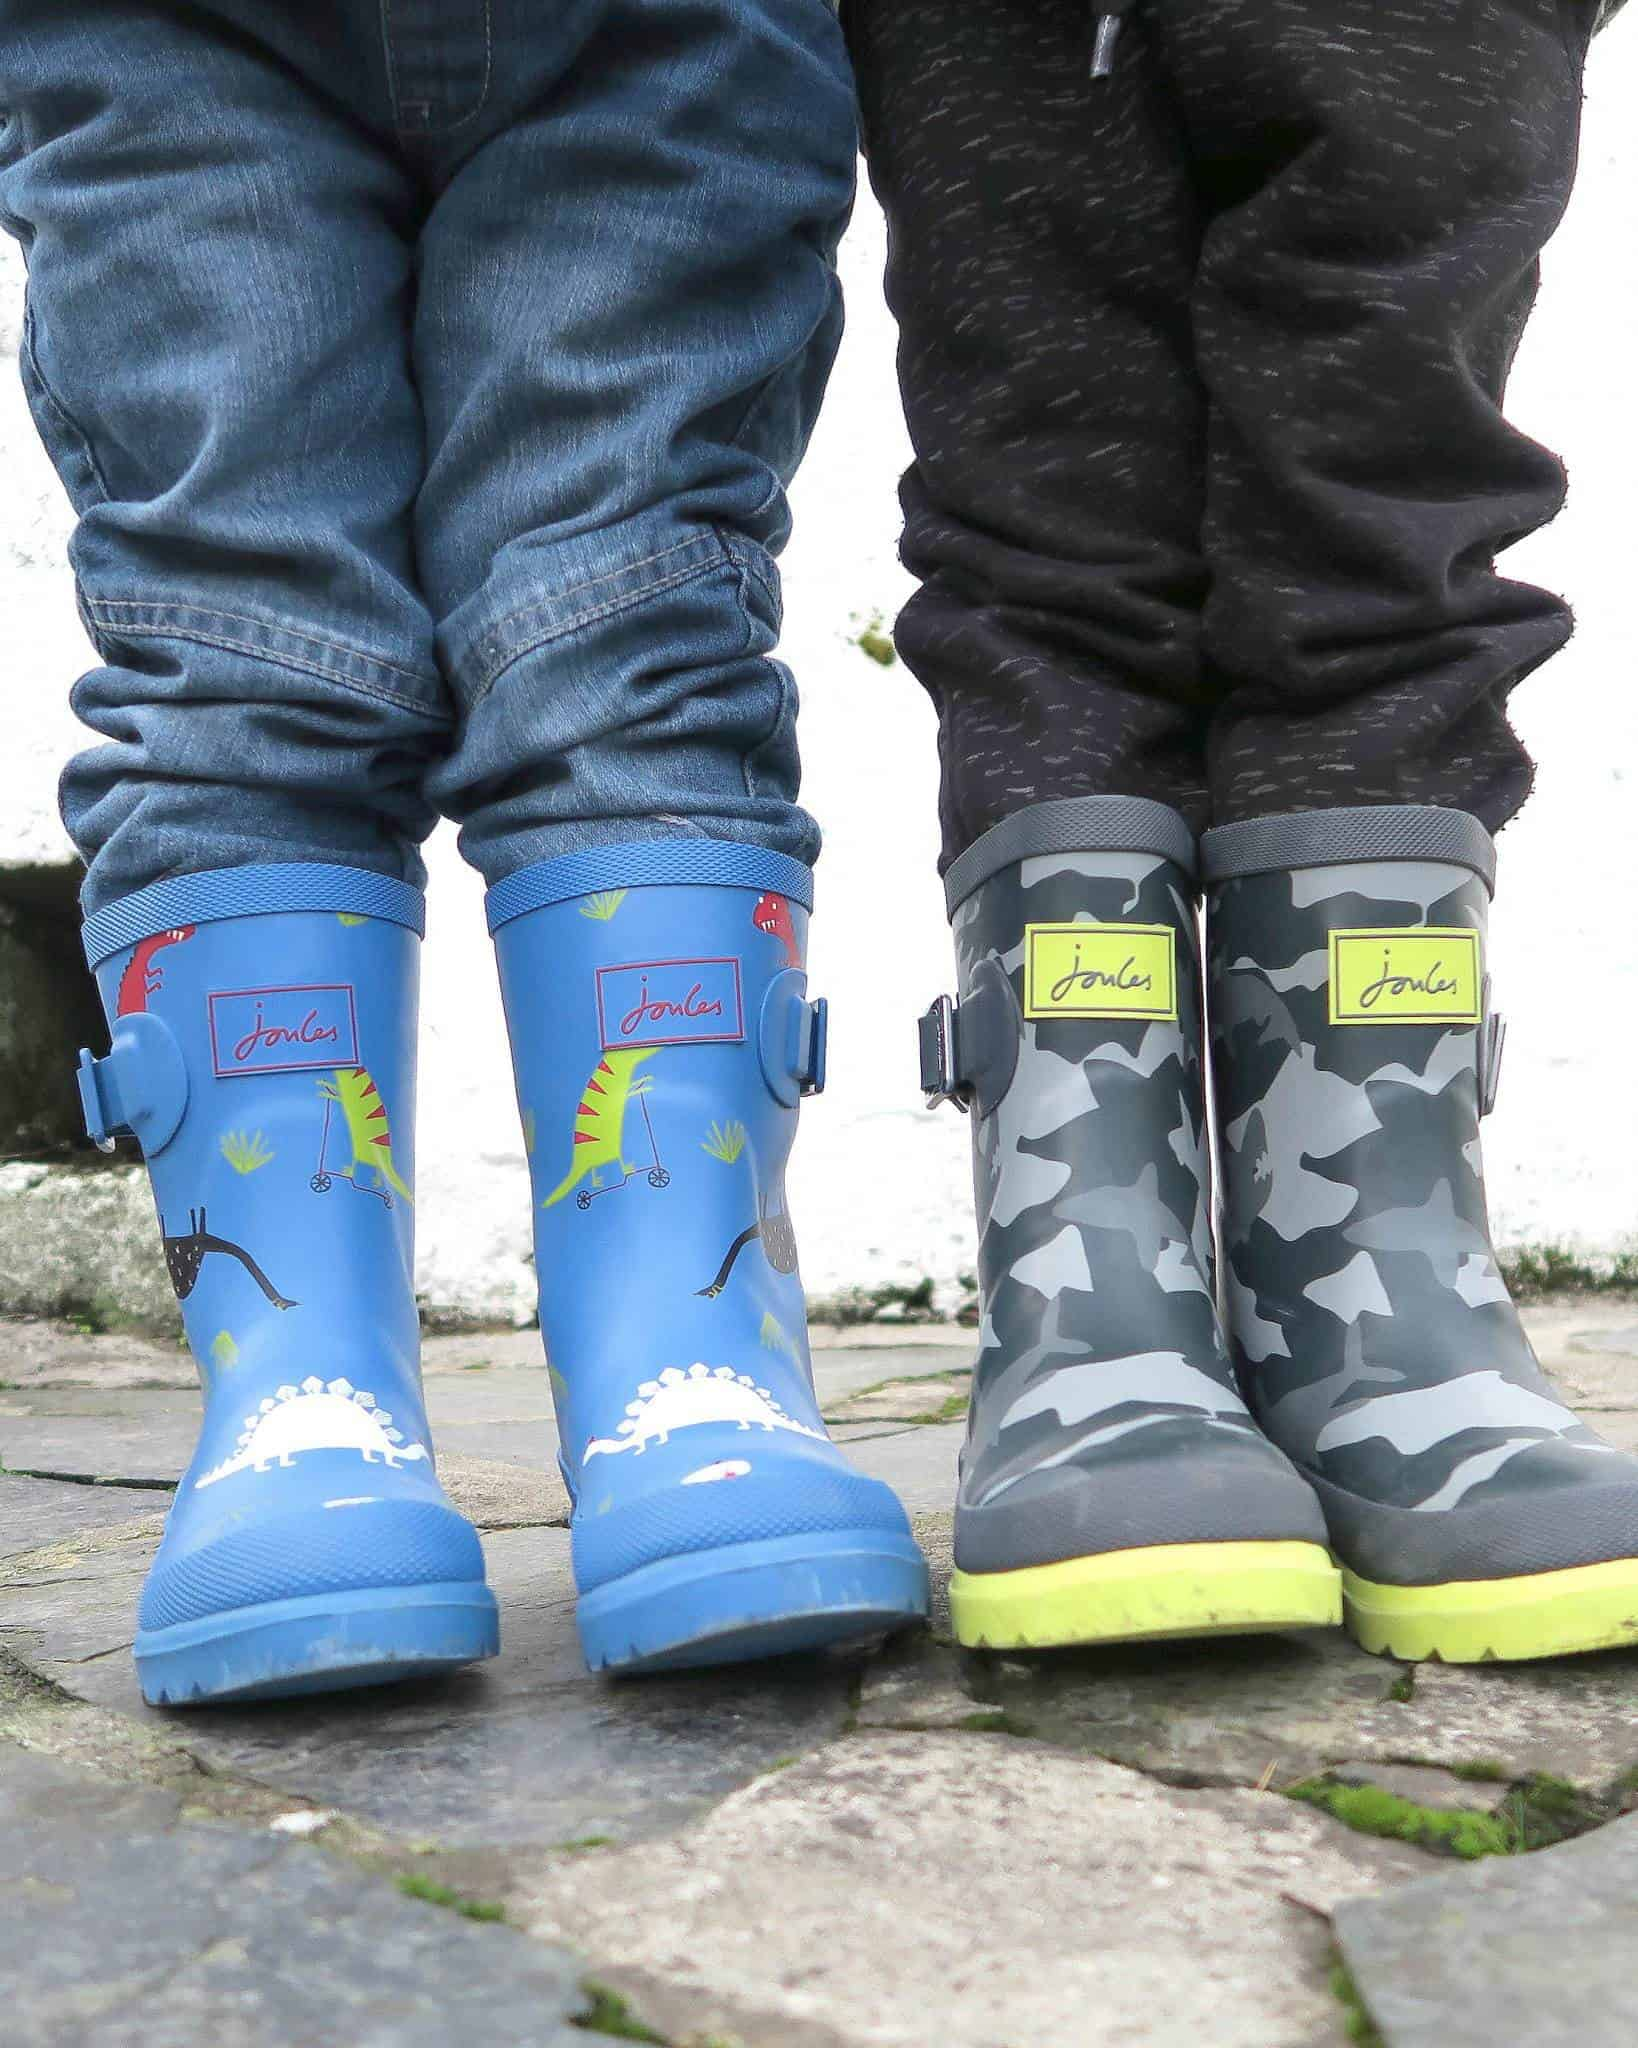 Joules wellies   Me and mine Feb 2017